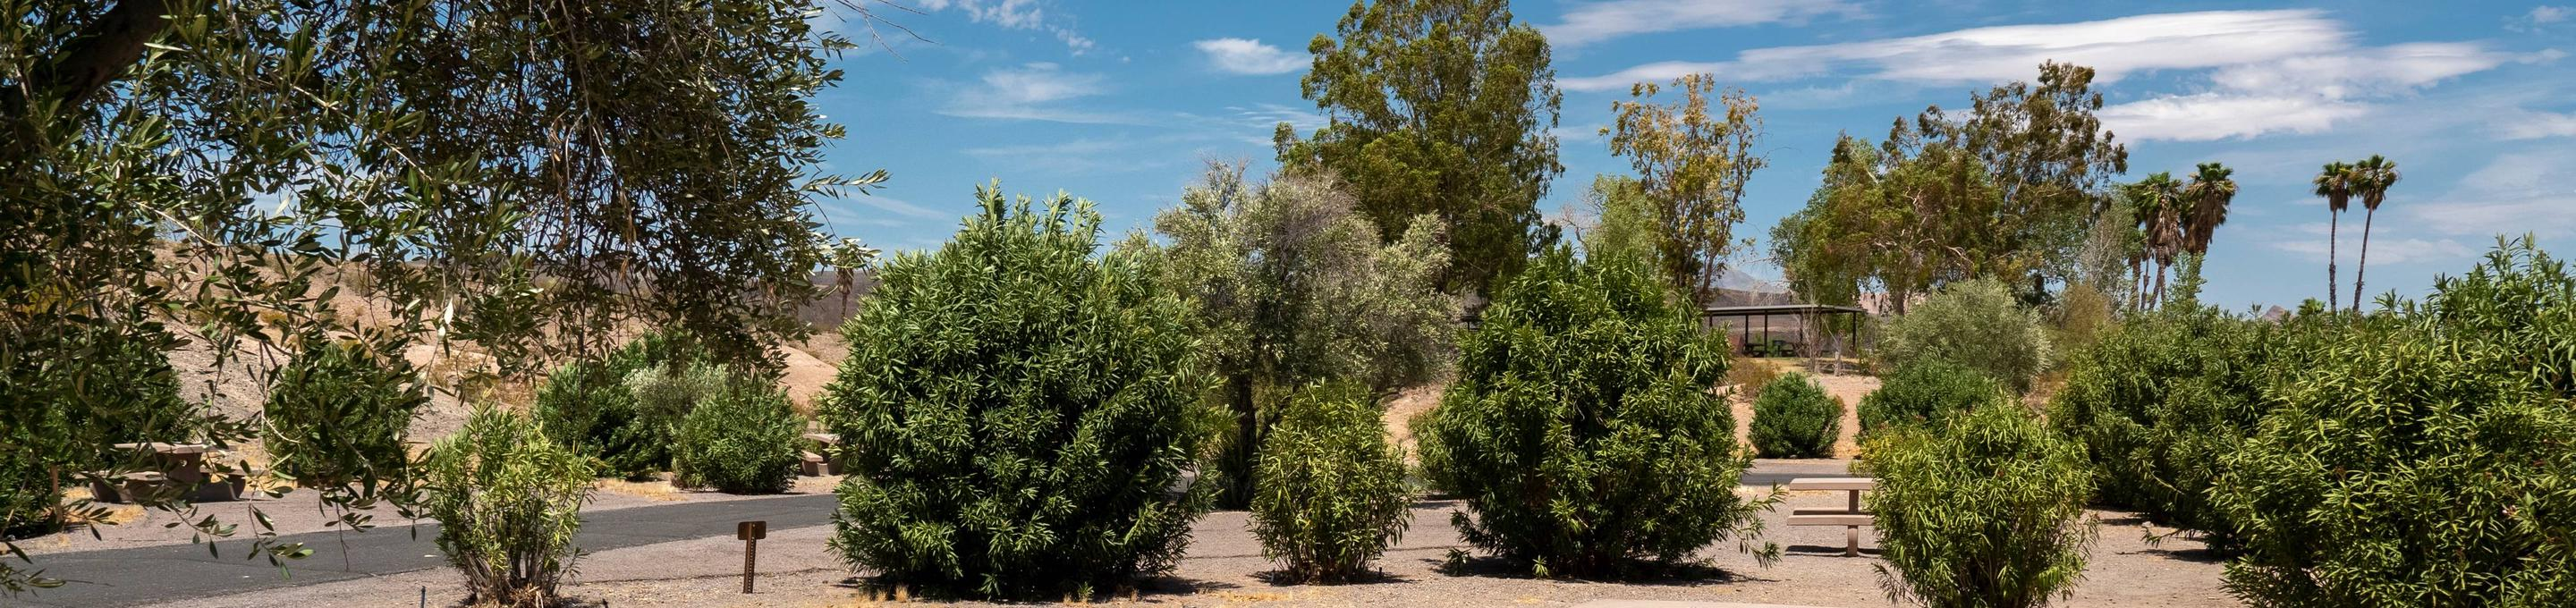 Campsite located in a desert settingCallville Bay Campground is a beautiful campground located in a desert setting